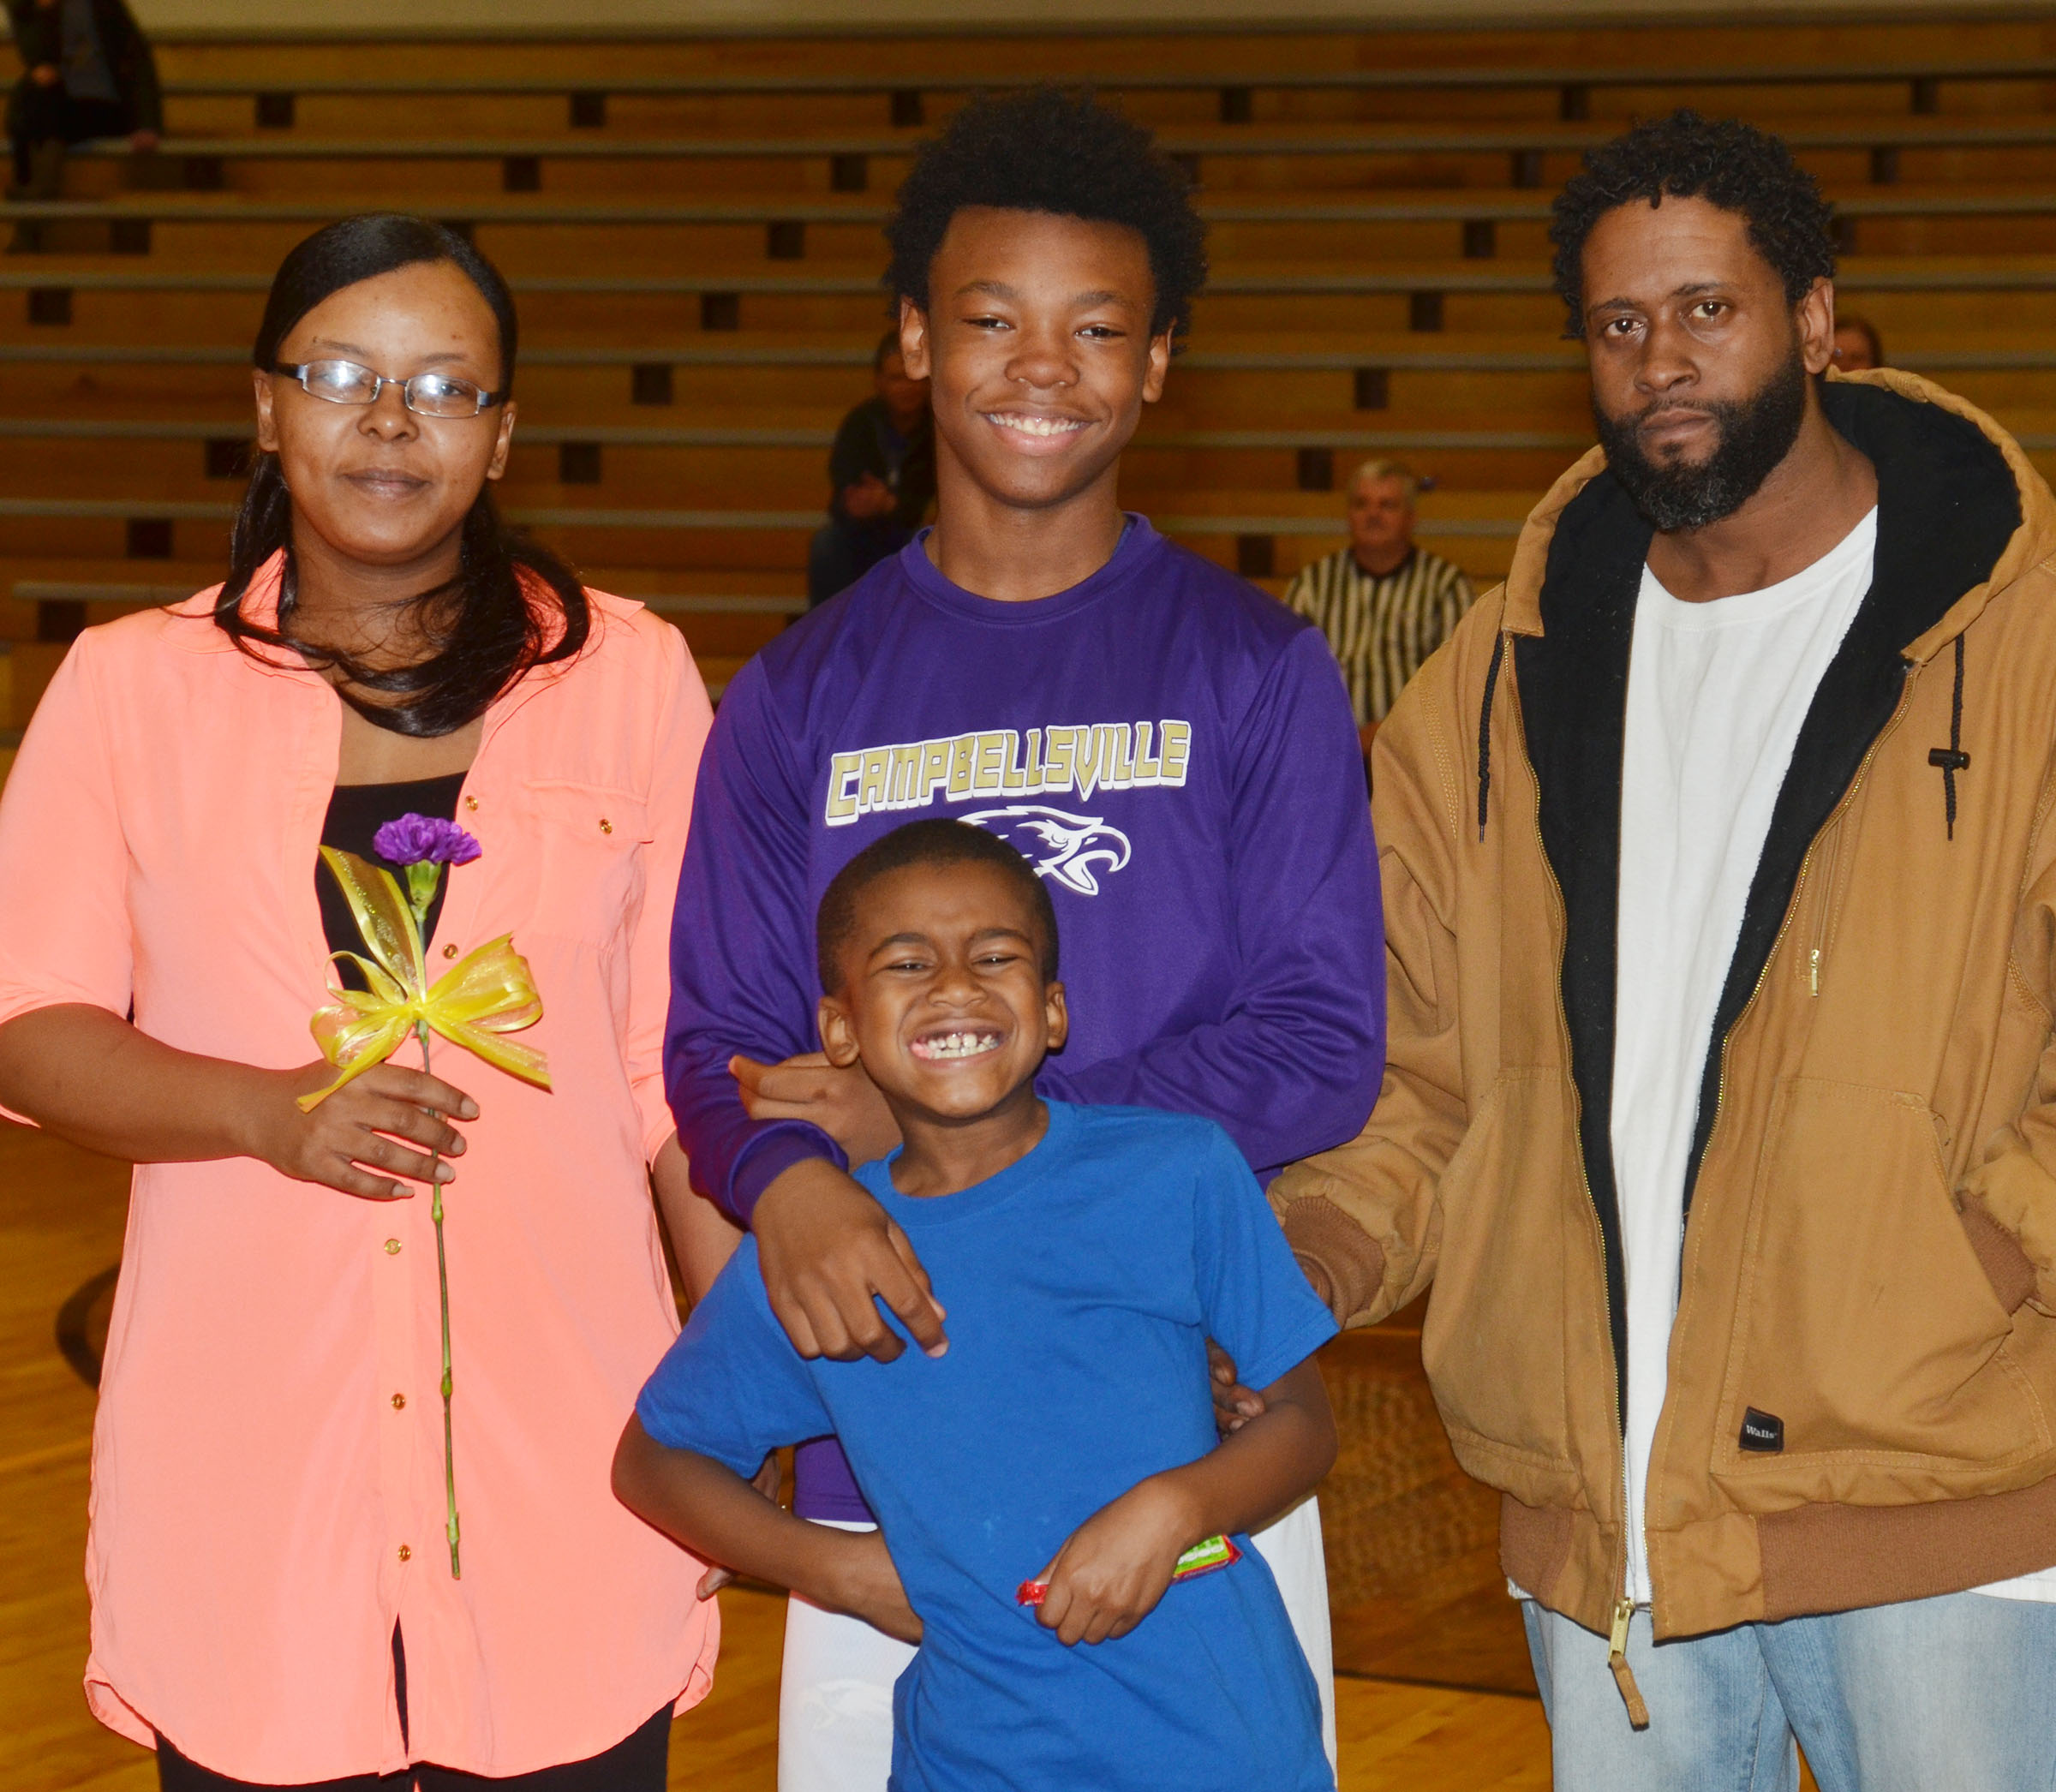 CMS eighth-grader Saevon Buckner is honored. He is pictured with his parents, Tanisha and Shawn Spaulding, and his brother, Campbellsville Elementary School second-grader Kae'vin Spaulding.